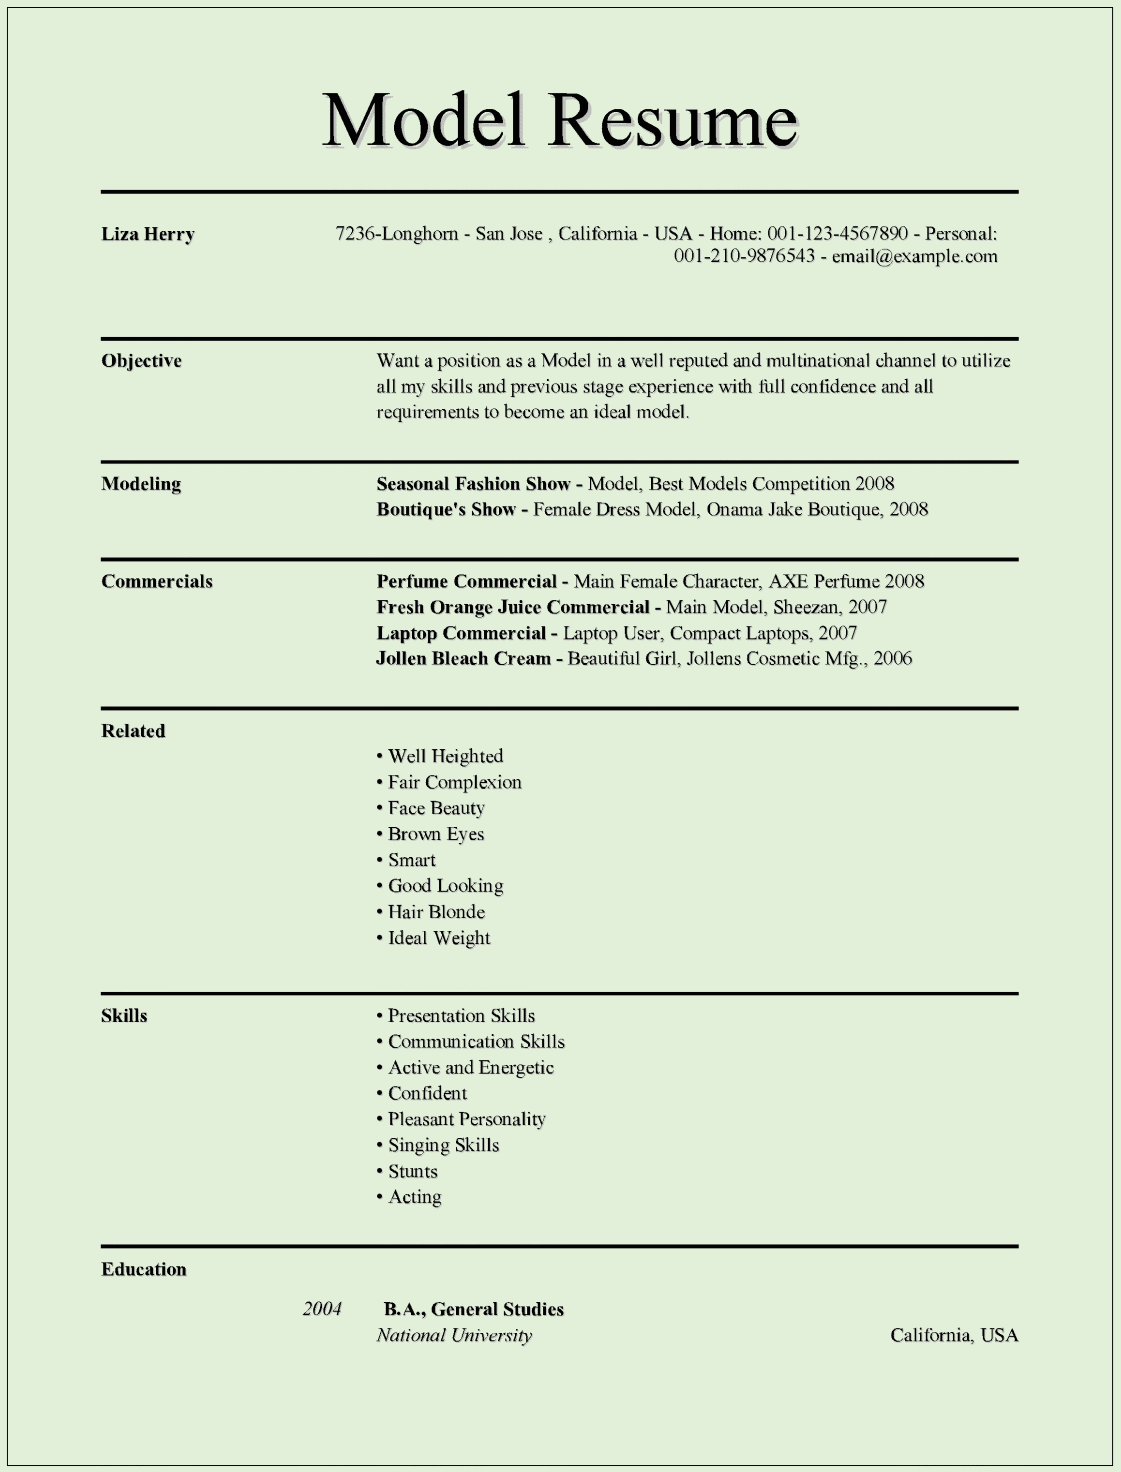 Model Resume Templates For Ms Word Free Example Format Download Best Resume Template Resume Templates Resume